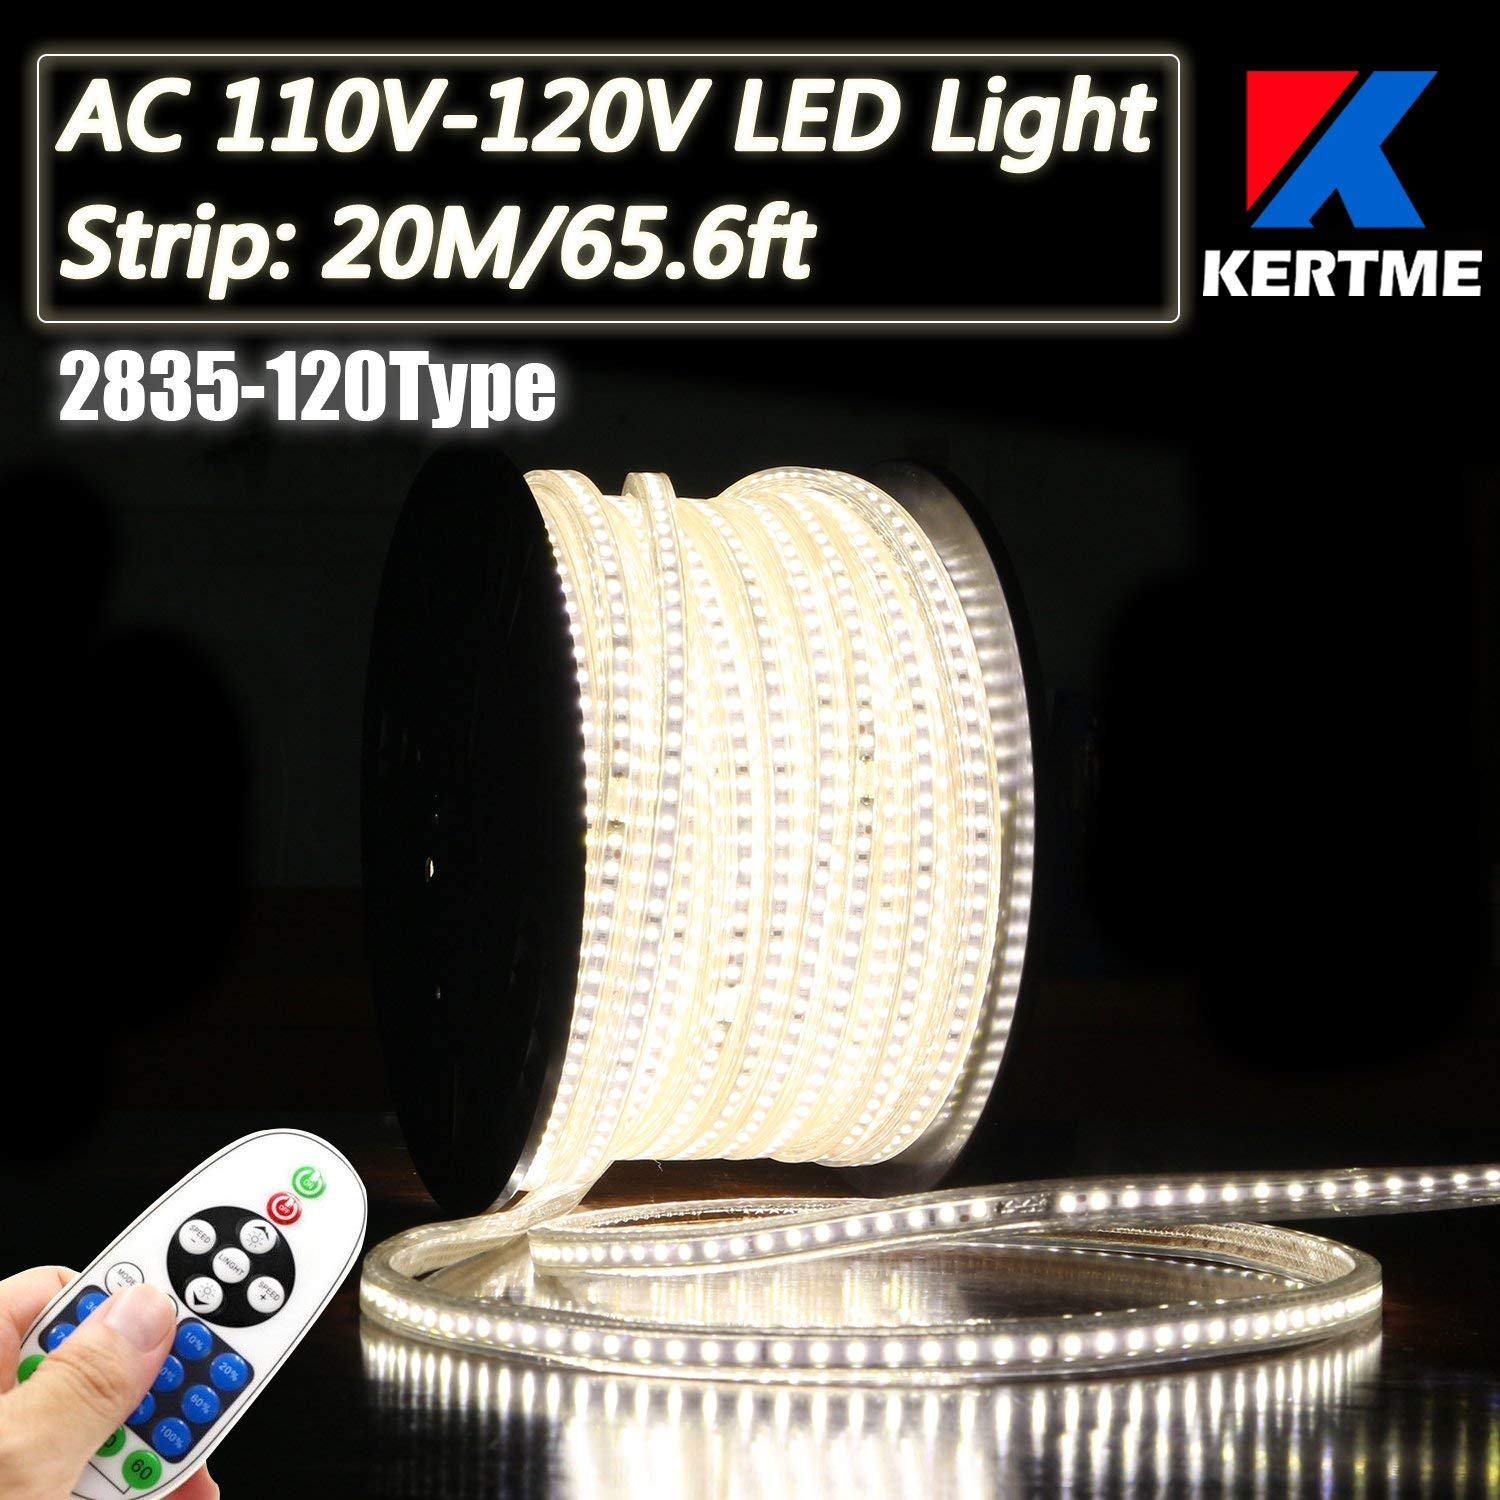 KERTME 2835-120 Type AC 110-120V LED Strip Lights, Flexible/Waterproof/Dimmable/Multi-Modes LED Rope Light + 23 Keys Remote for Home/Garden/Building Decoration (65.6ft/20m, Natural White 4000K)